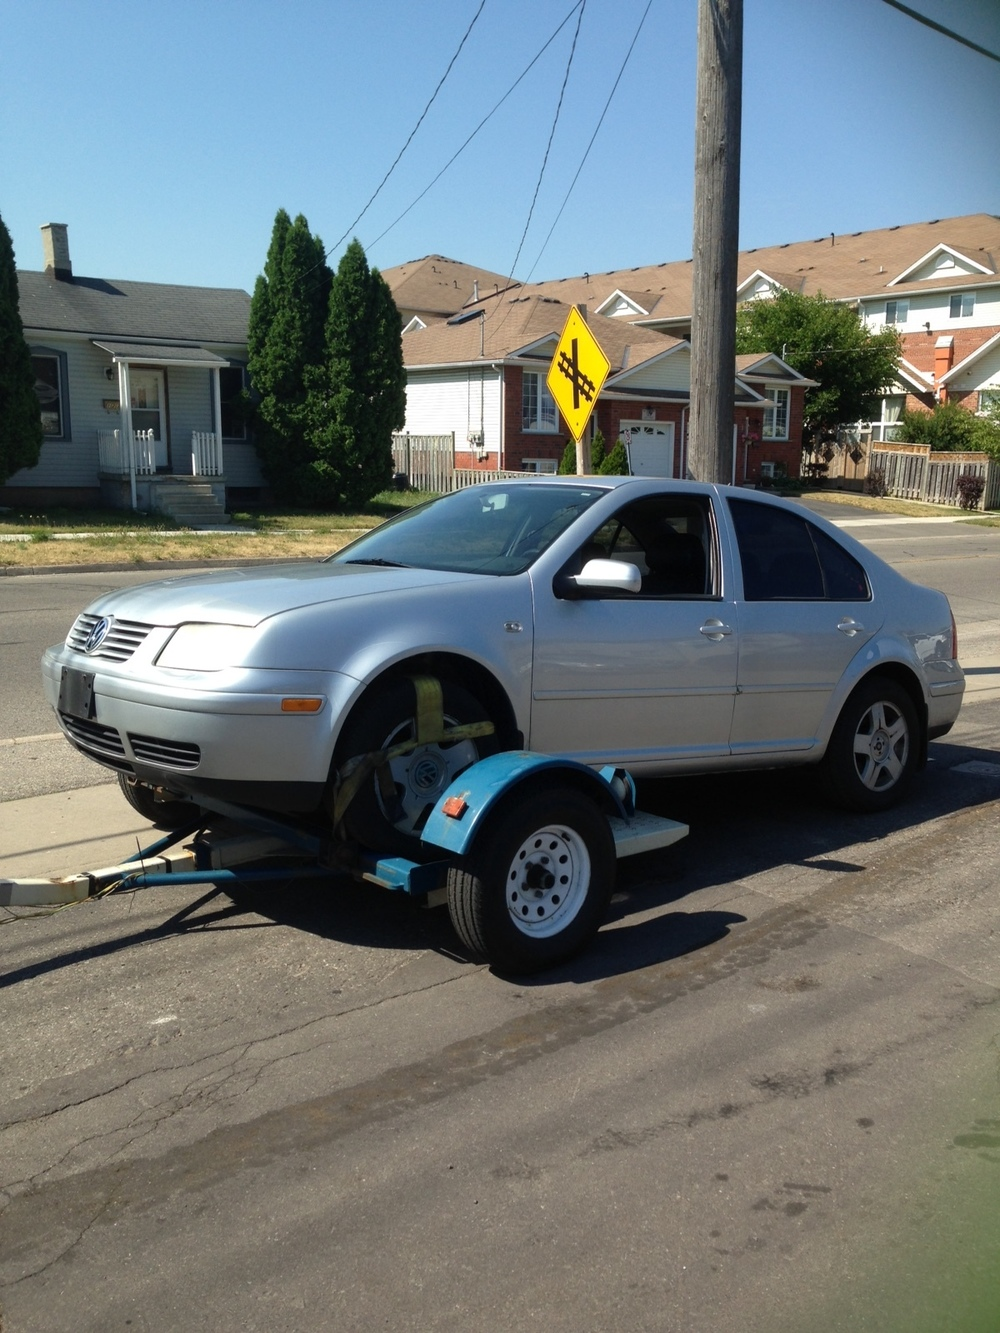 Jetta being towed all around Brantford. What else is new?